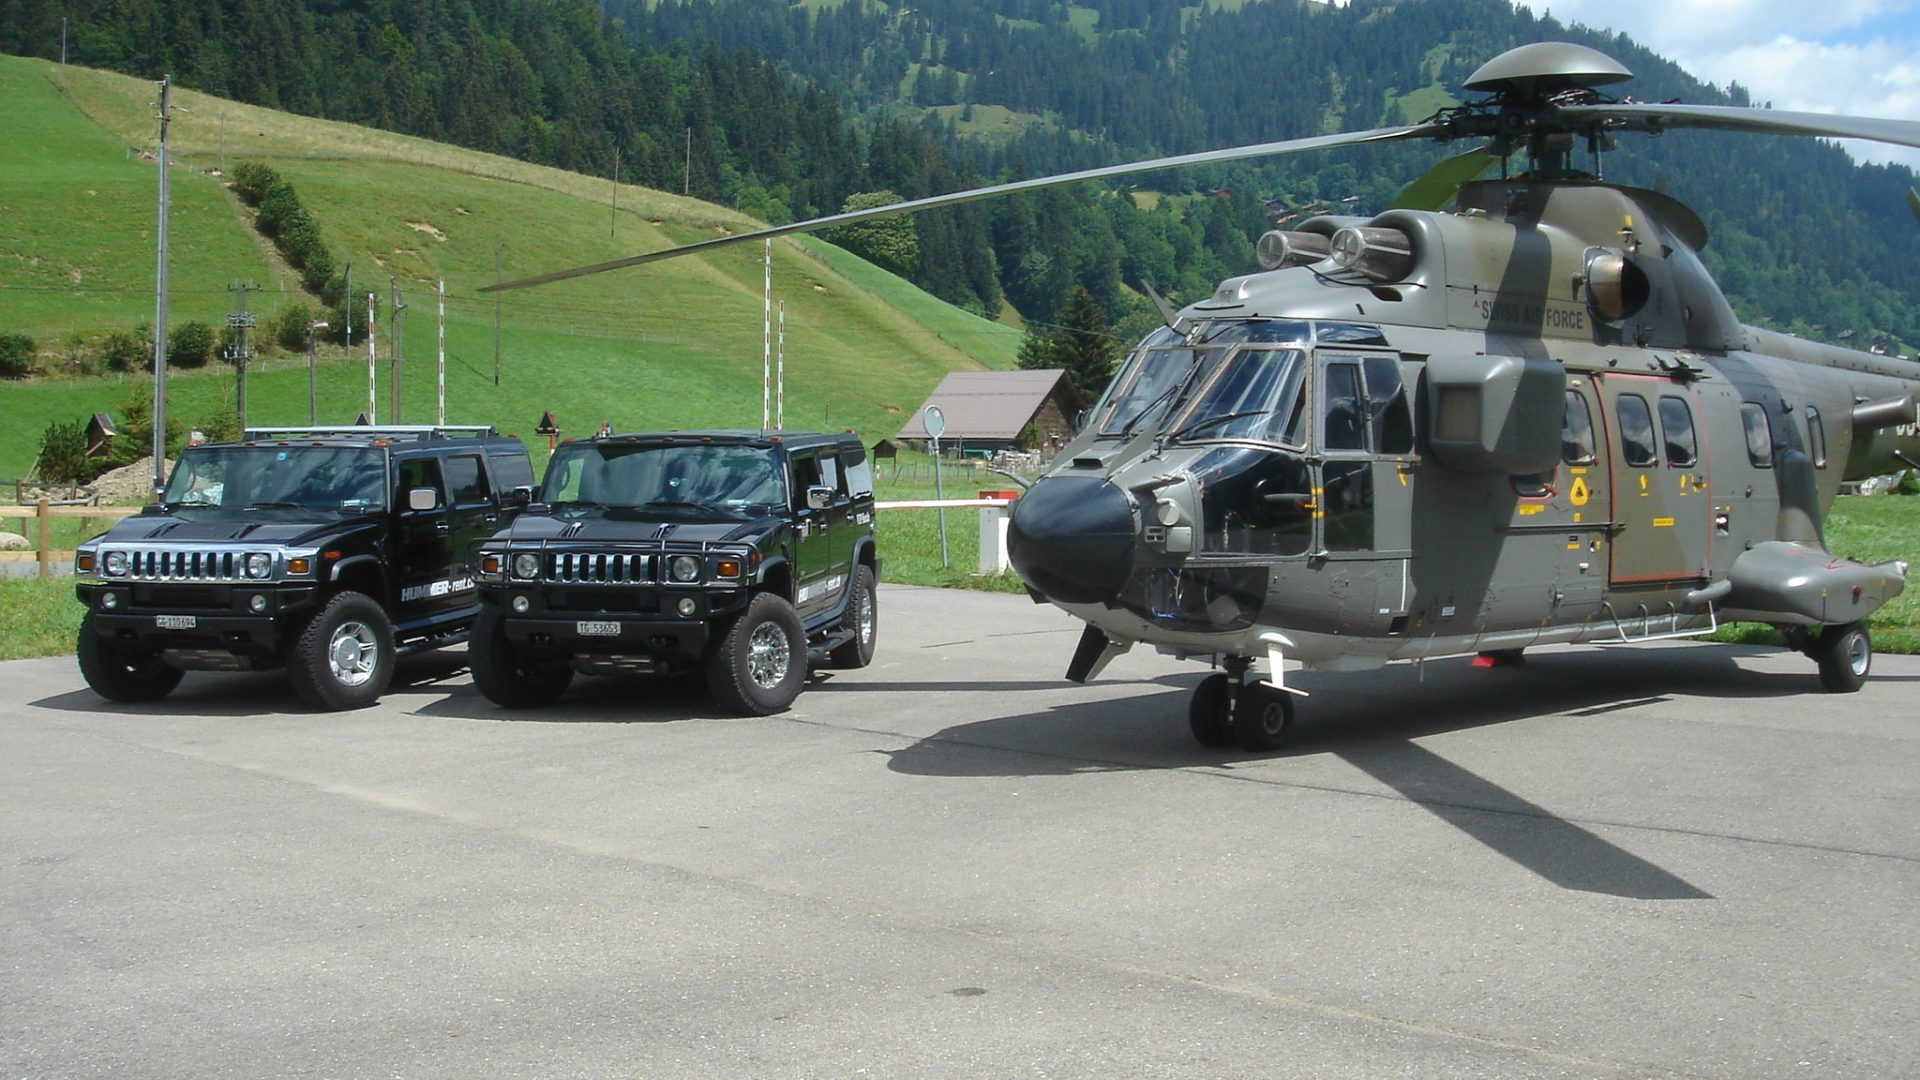 Promotion HUMMER SWISS Airforce THE DRIVER